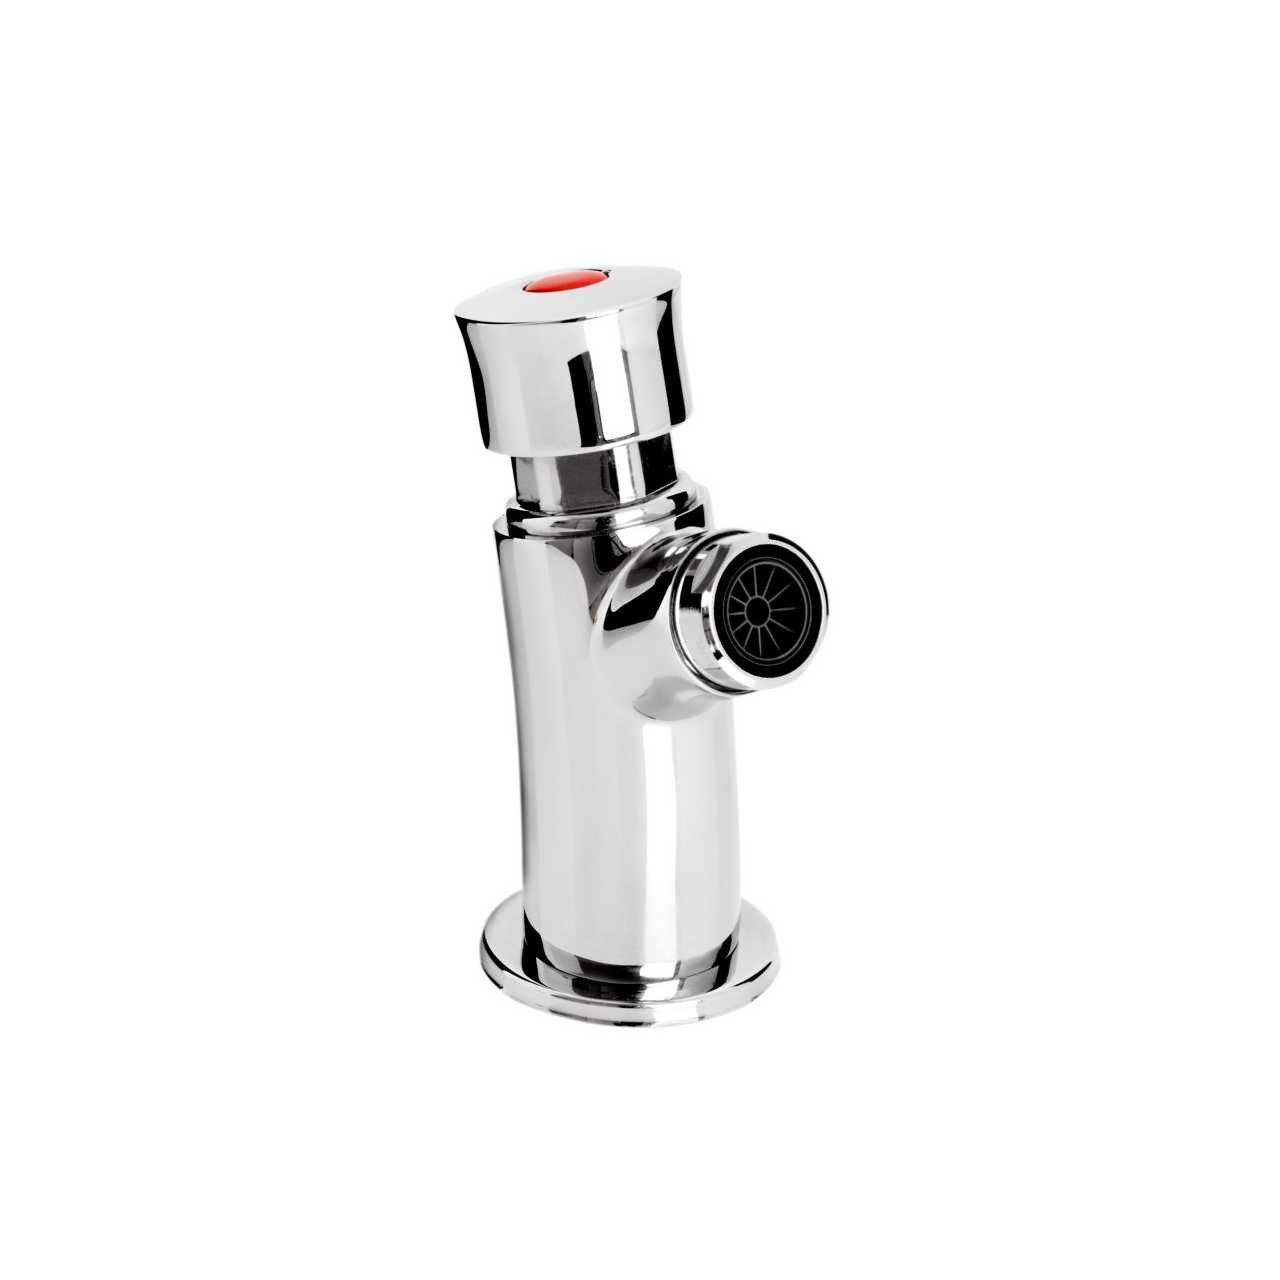 Bristan Timed Flow Chrome Soft Touch Flow Regulated Single Wall Mounted Basin Tap with Hot and Cold Indices - Z2-BIB-C